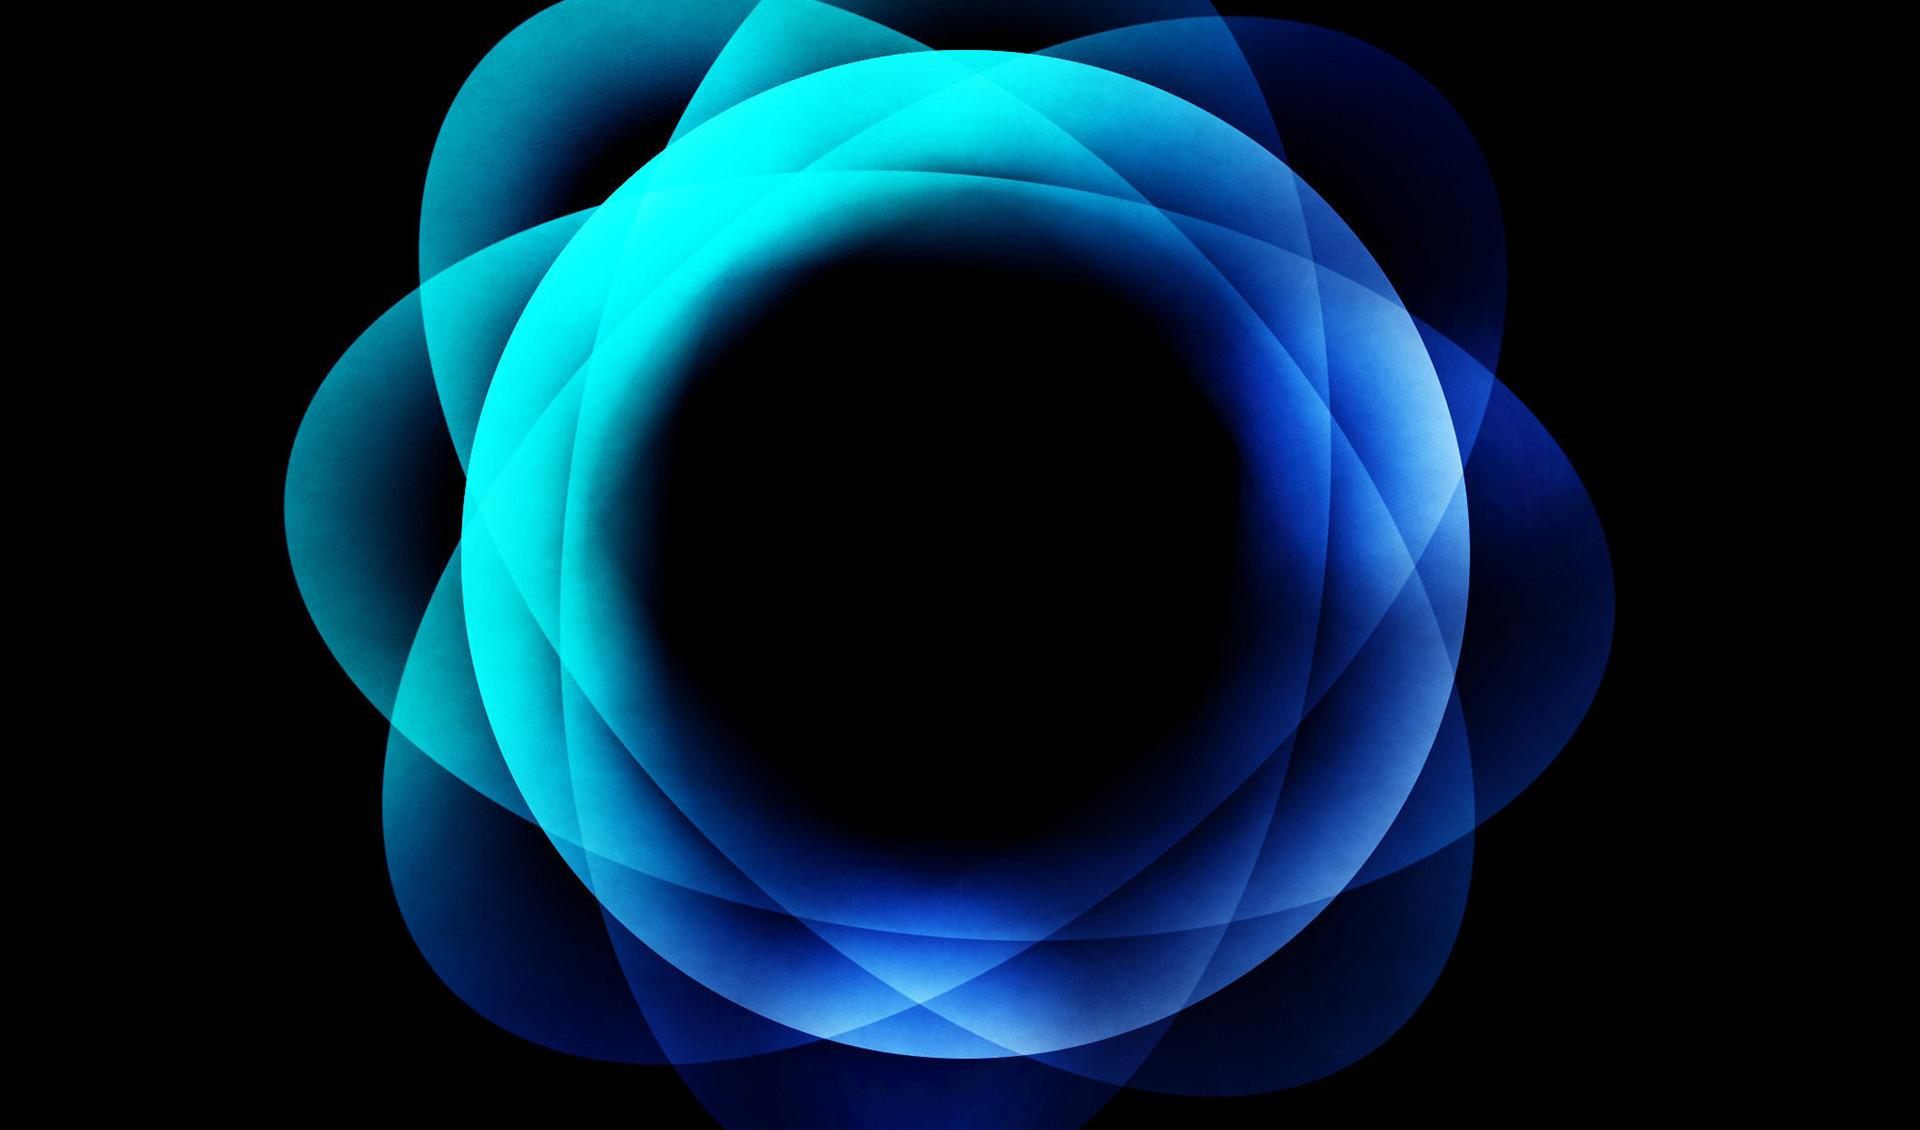 Blue glowing circles piled up wallpapers HD quality